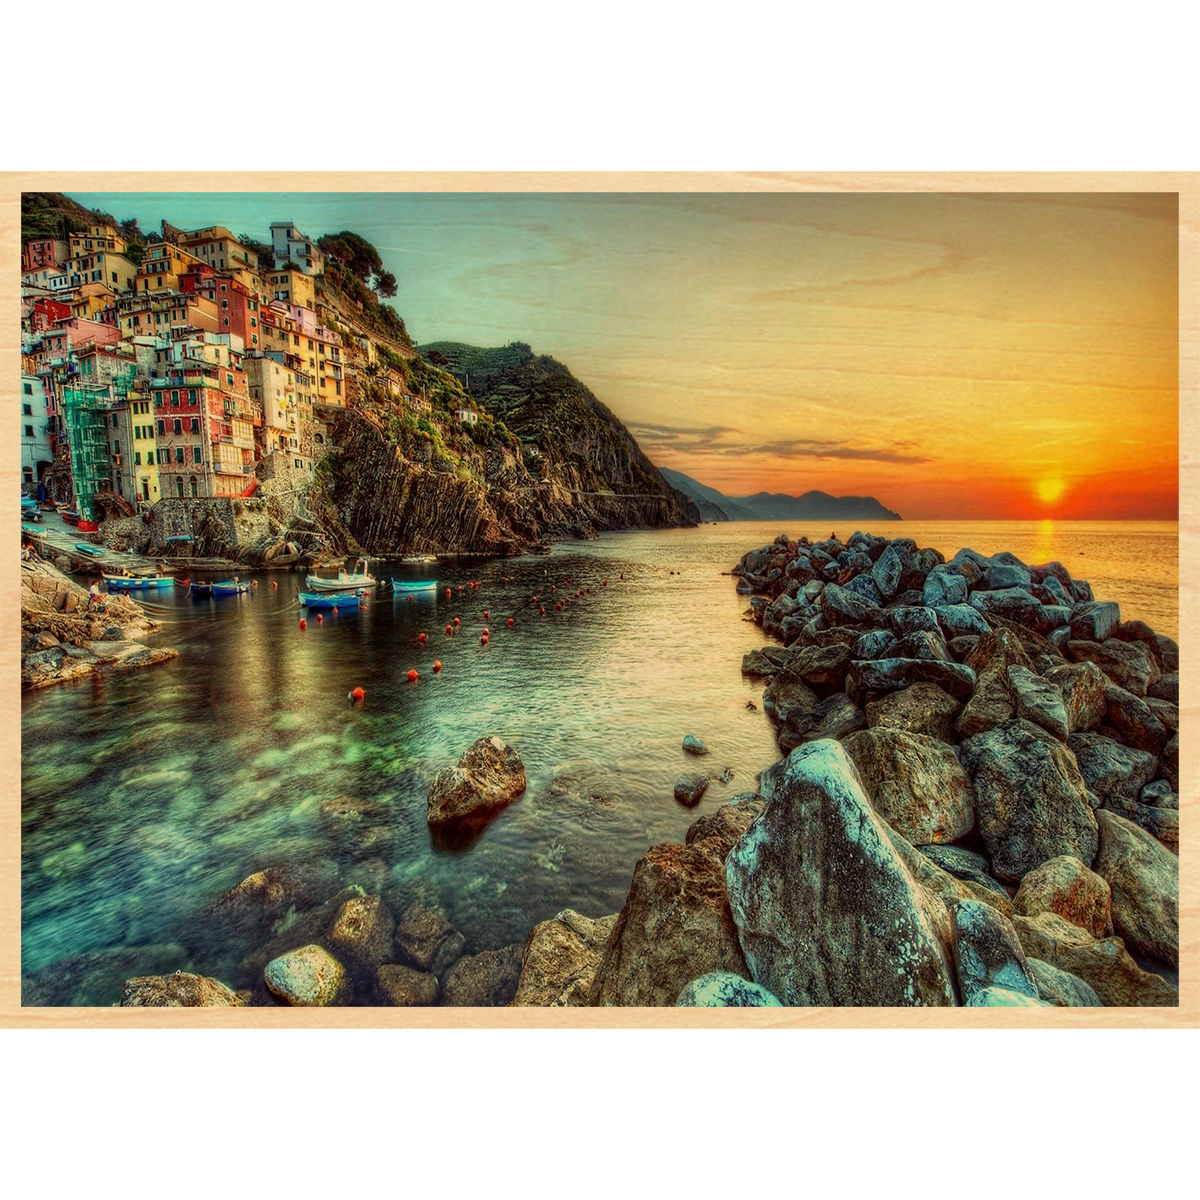 Coast Of Italy Color Wood Postcard Italy Landscape Landscape Wallpaper Nature Beach